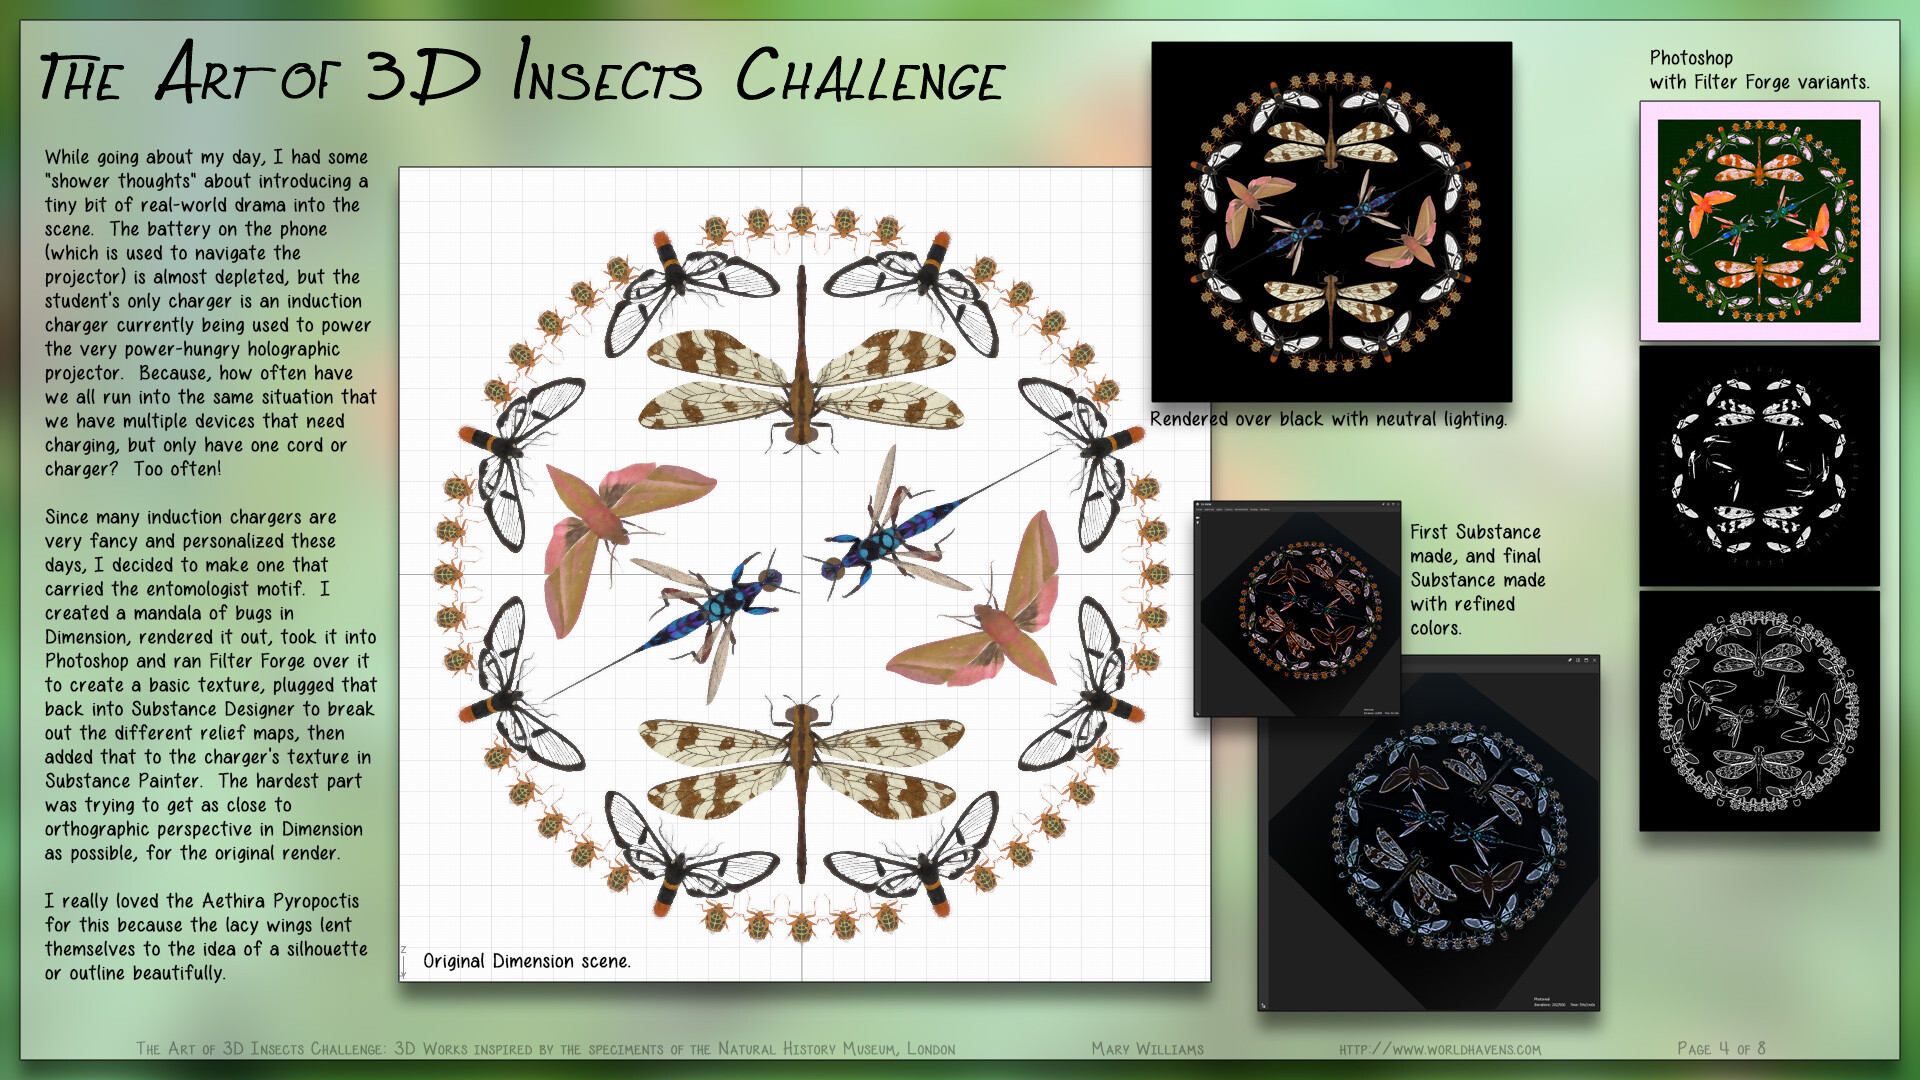 Creating the insect mandala motif for the charger and textbook.